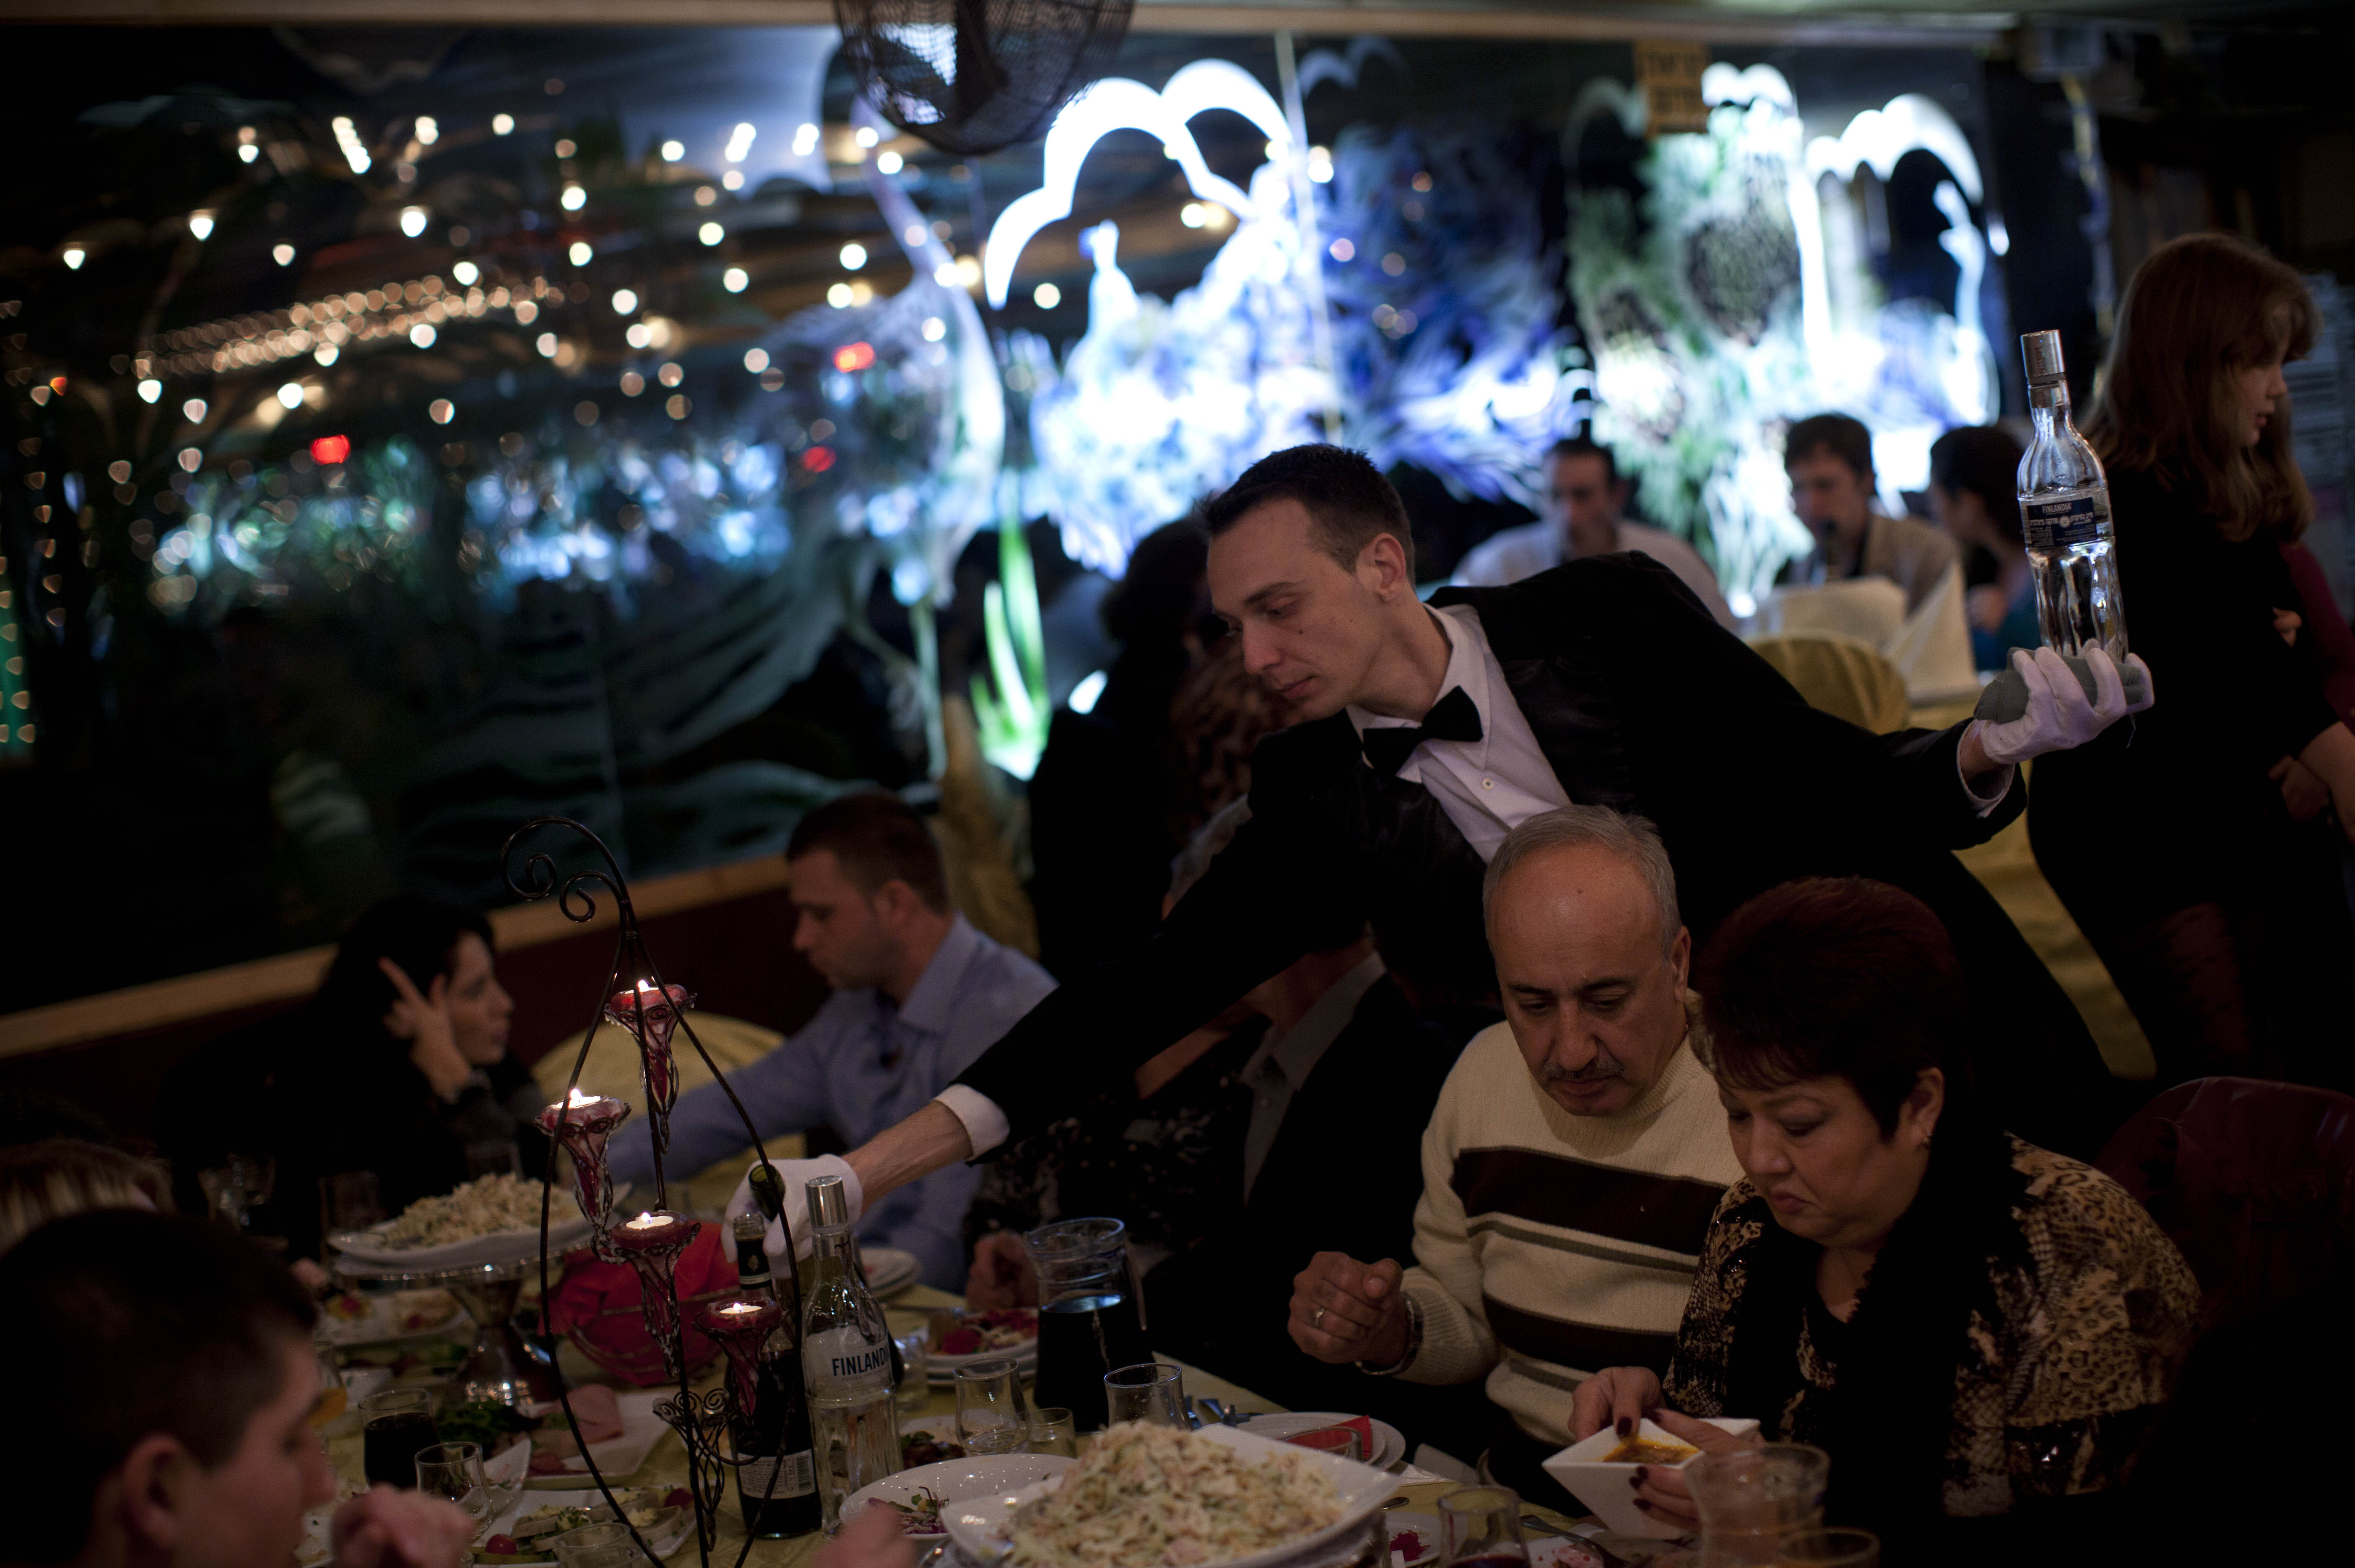 A waiter serves traditional Russian food at a seaside restaurant in Ashdod, a southern Israeli city heavily populated by immigrants from the former Soviet Union.